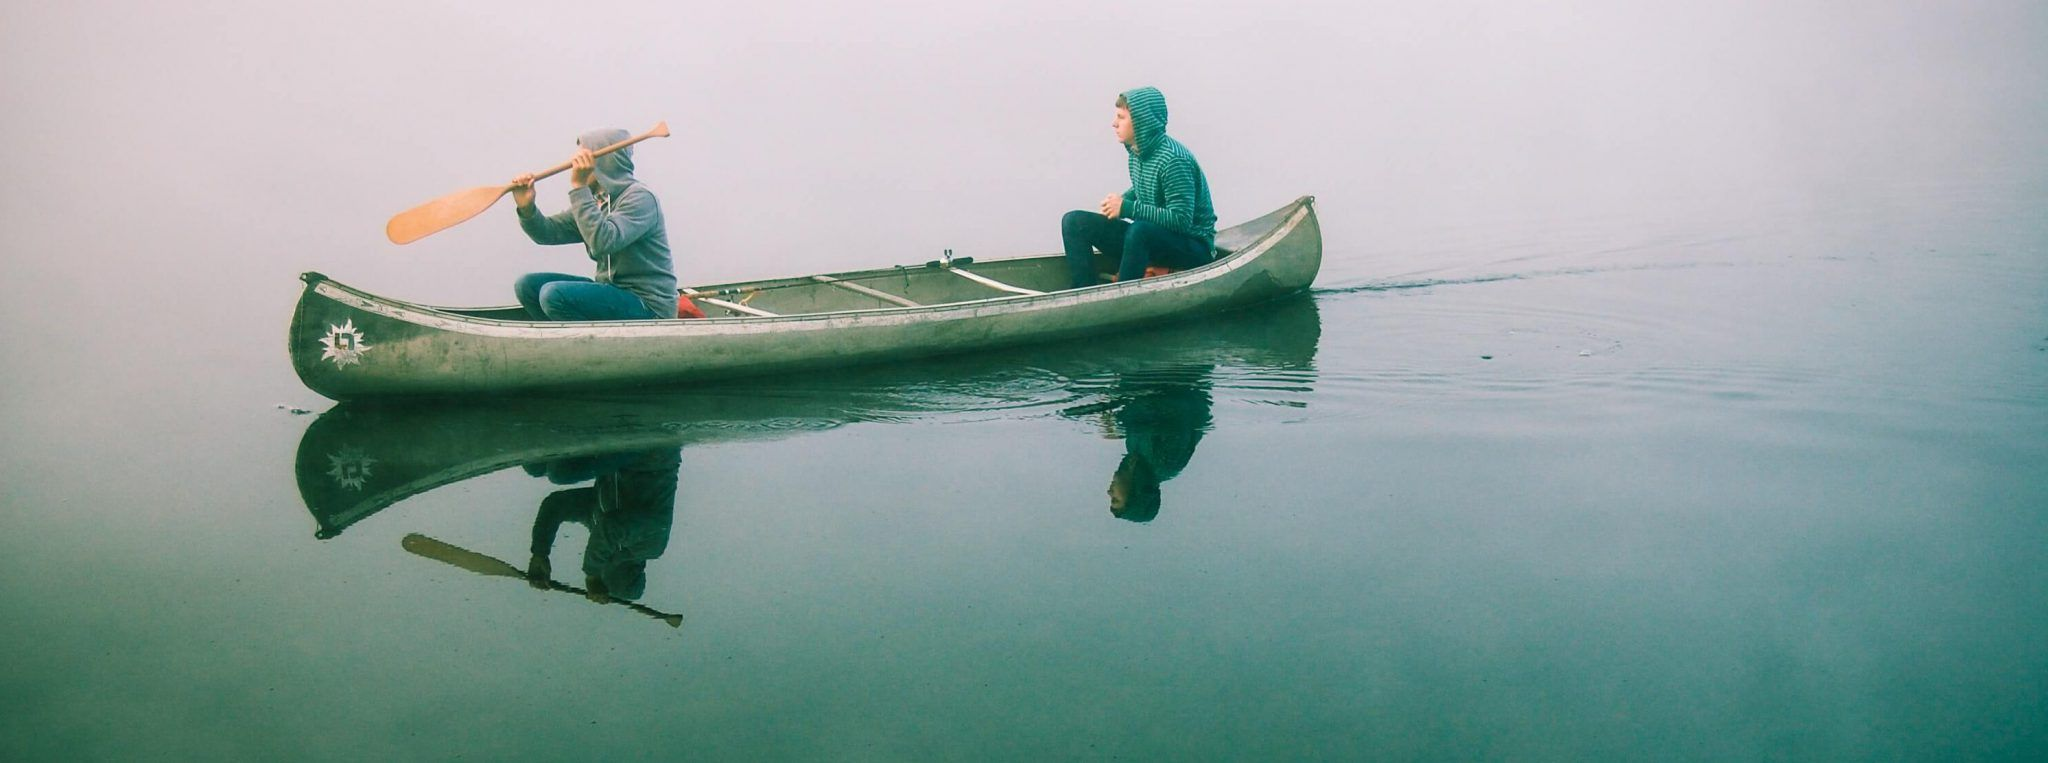 Two people in a canoe on water